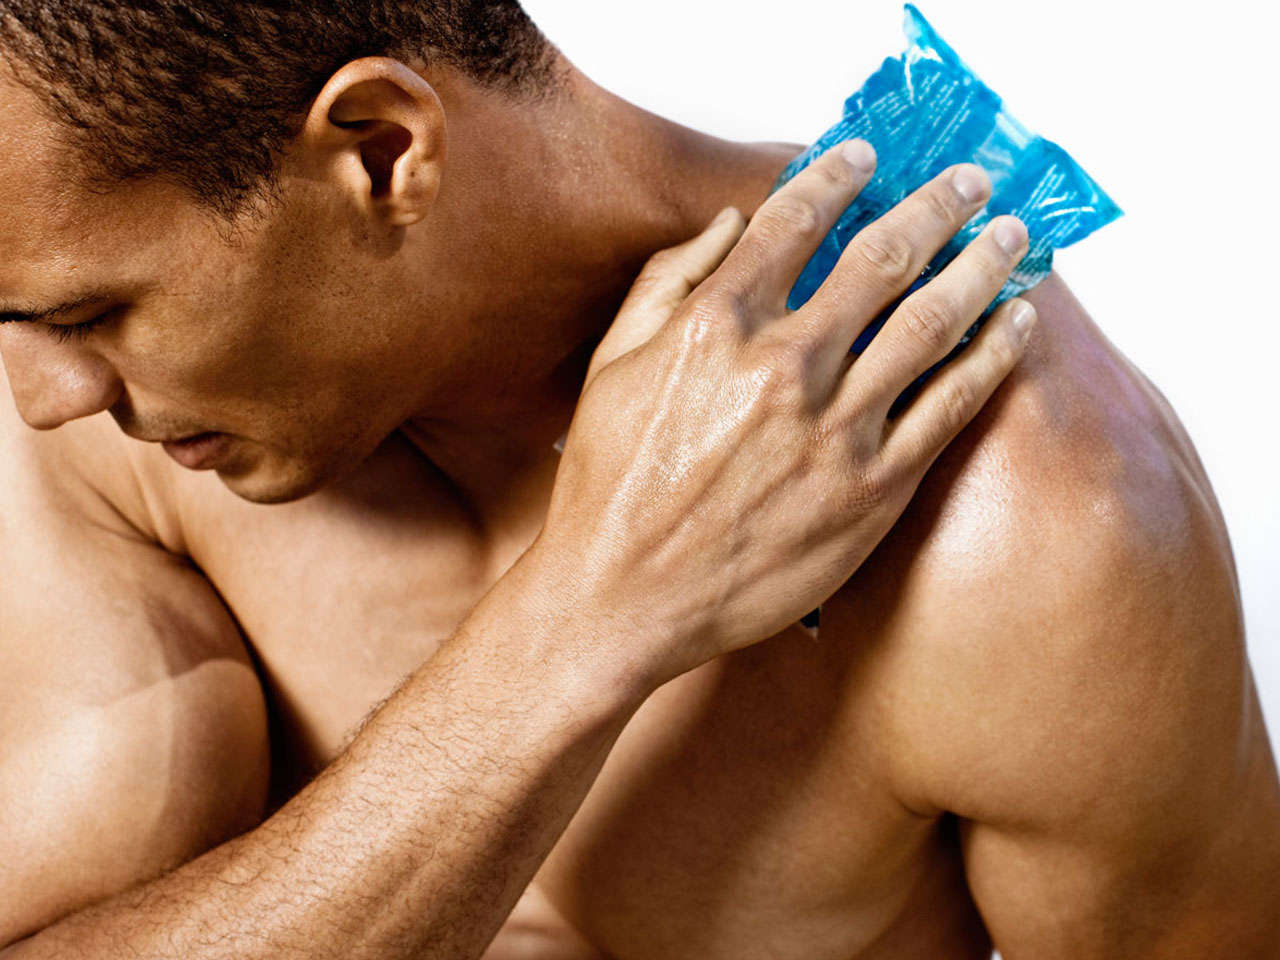 Muscle males homemade love juice in throat